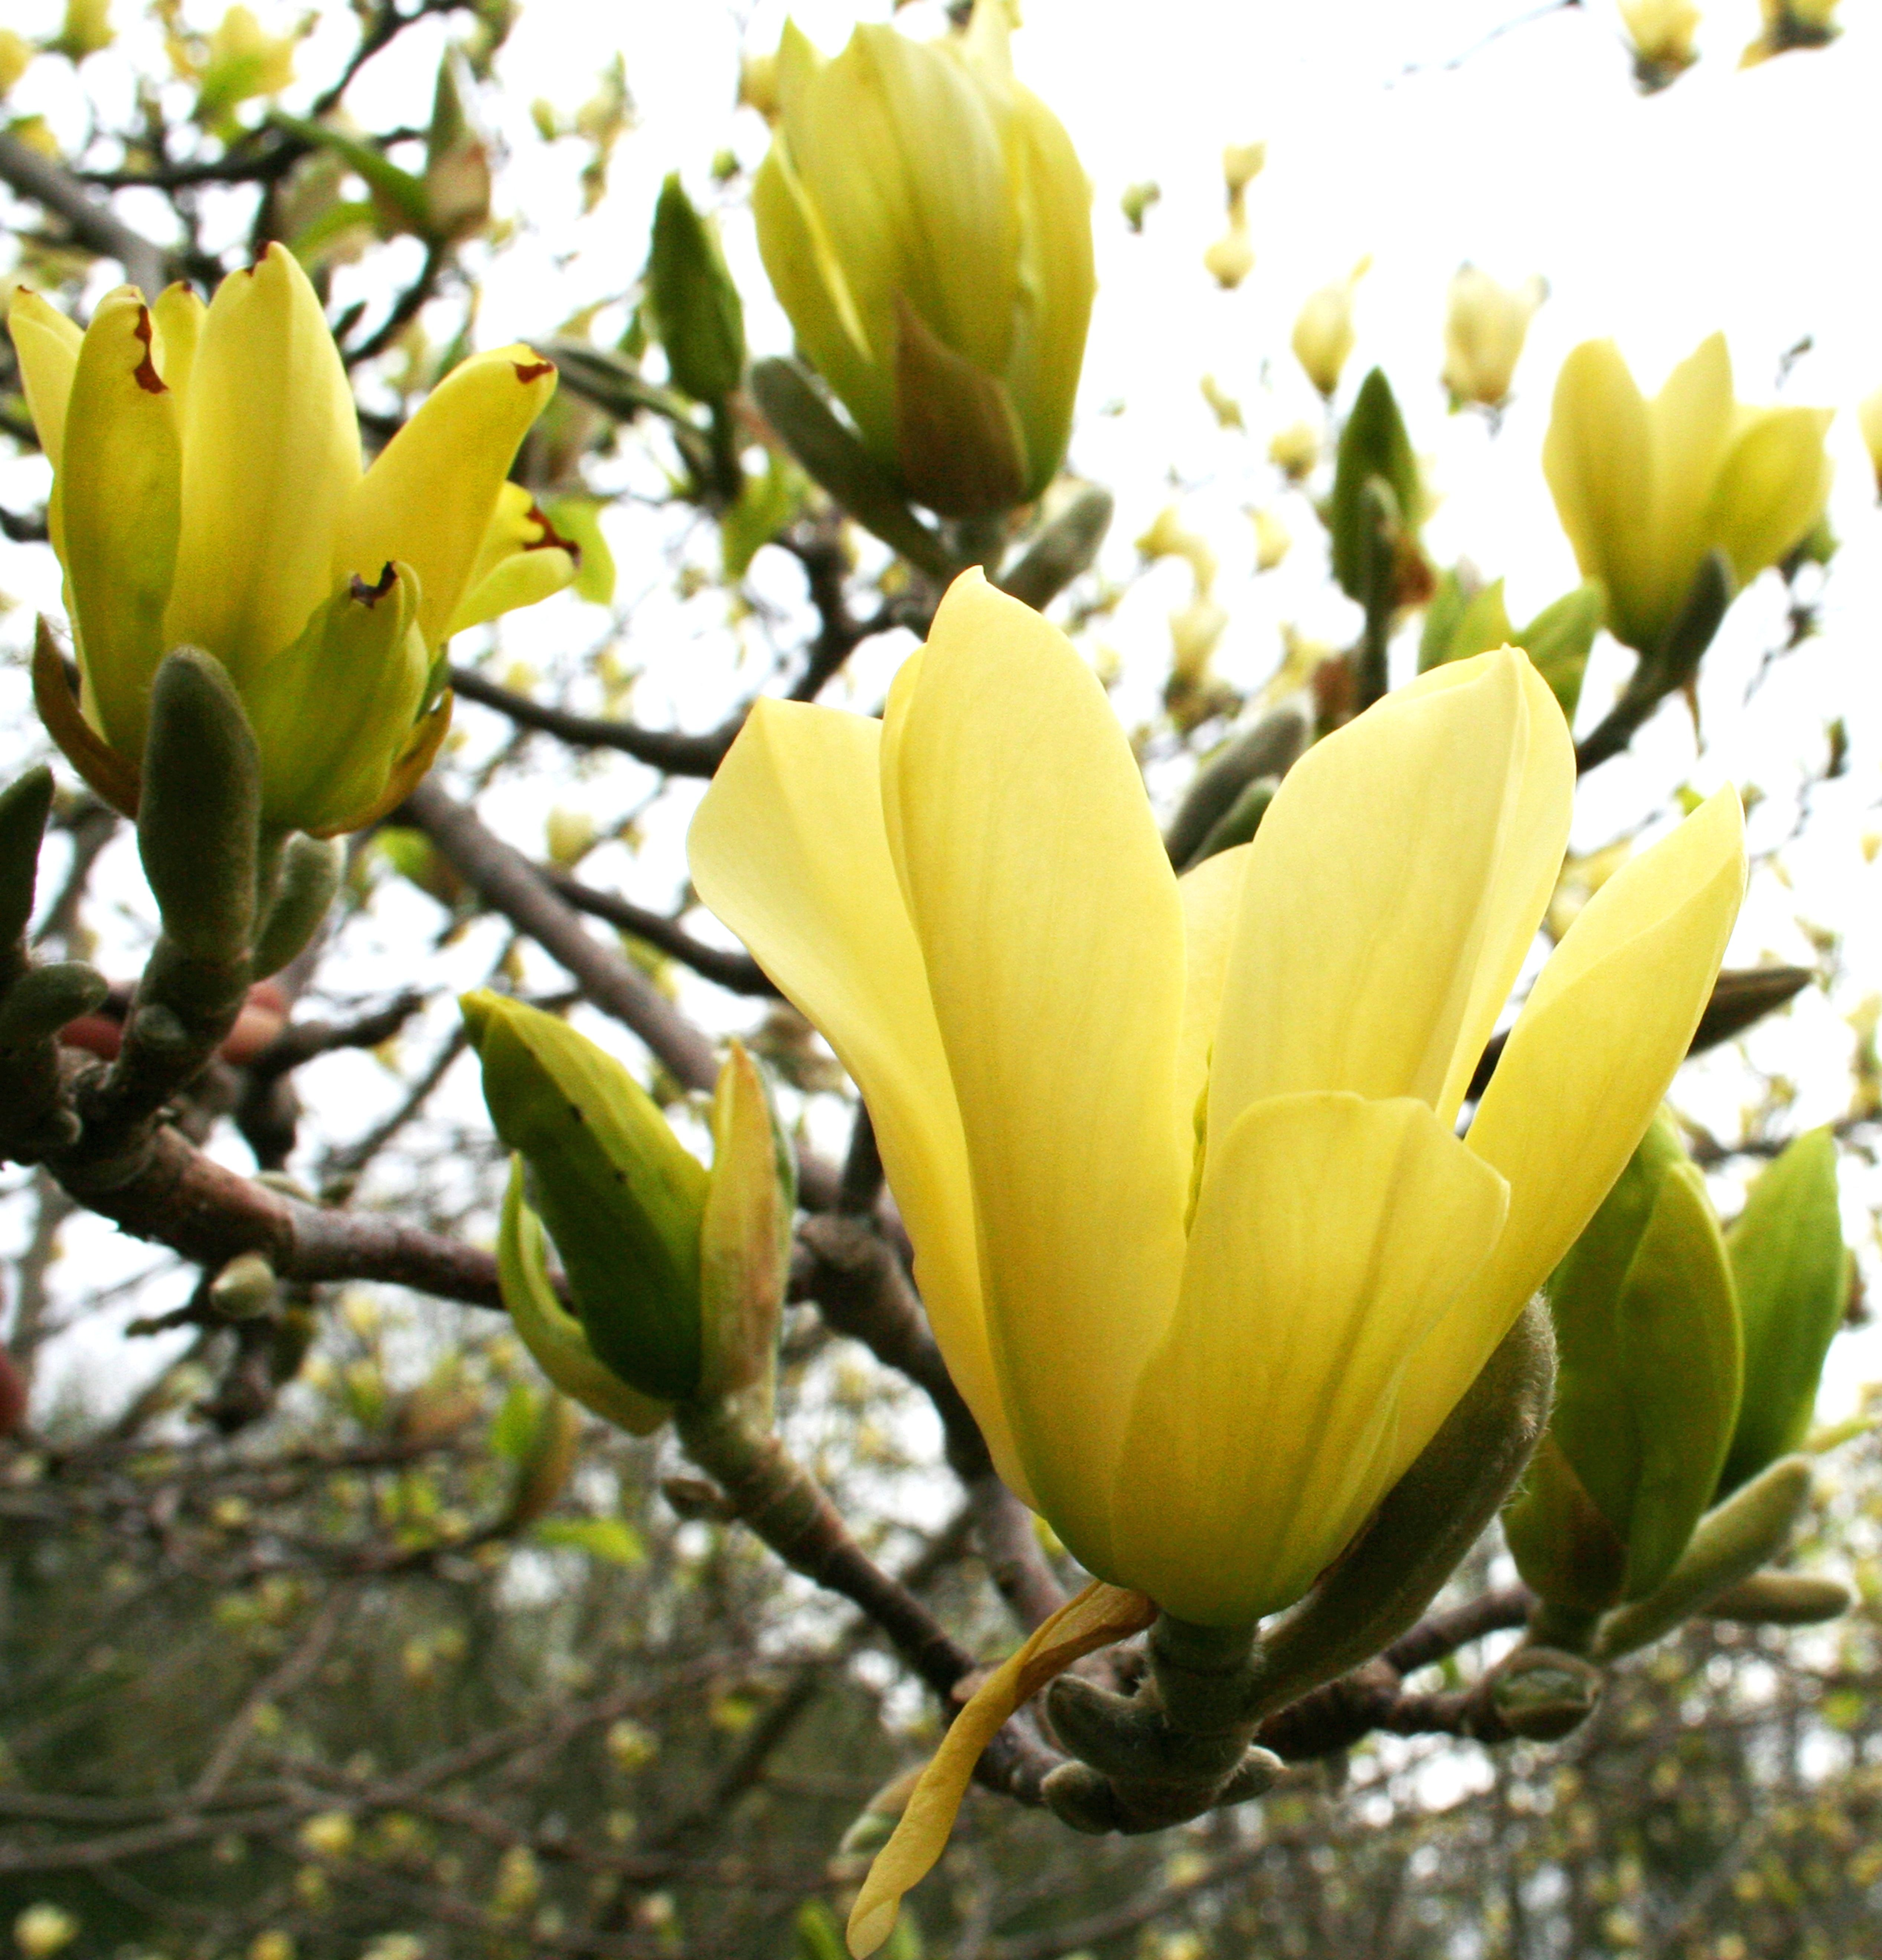 Butterflies magnolia a new introduction of hardy yellow flowering butterflies magnolia a new introduction of hardy yellow flowering magnolia blooms later than saucer magnolia mightylinksfo Gallery